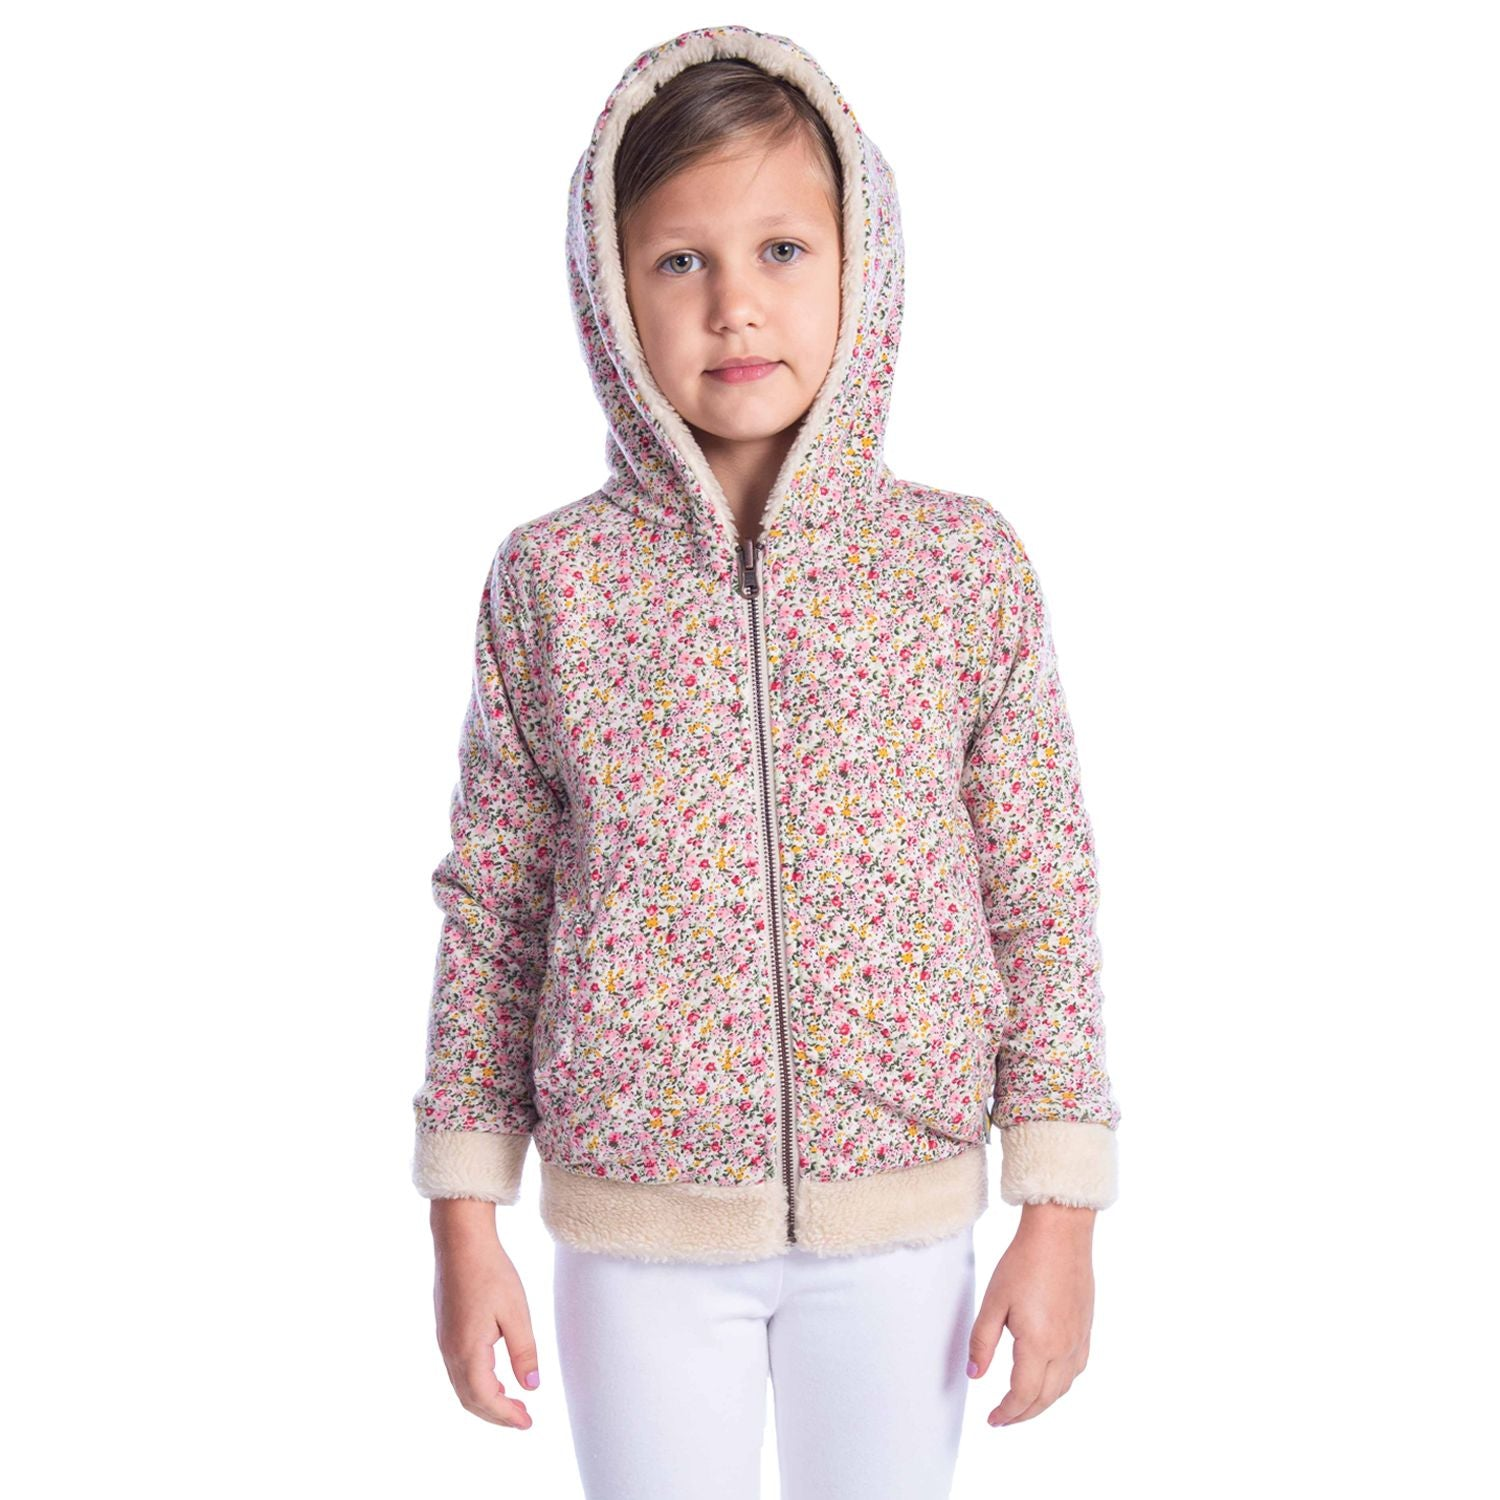 Furry Reversible Jacket for Girls